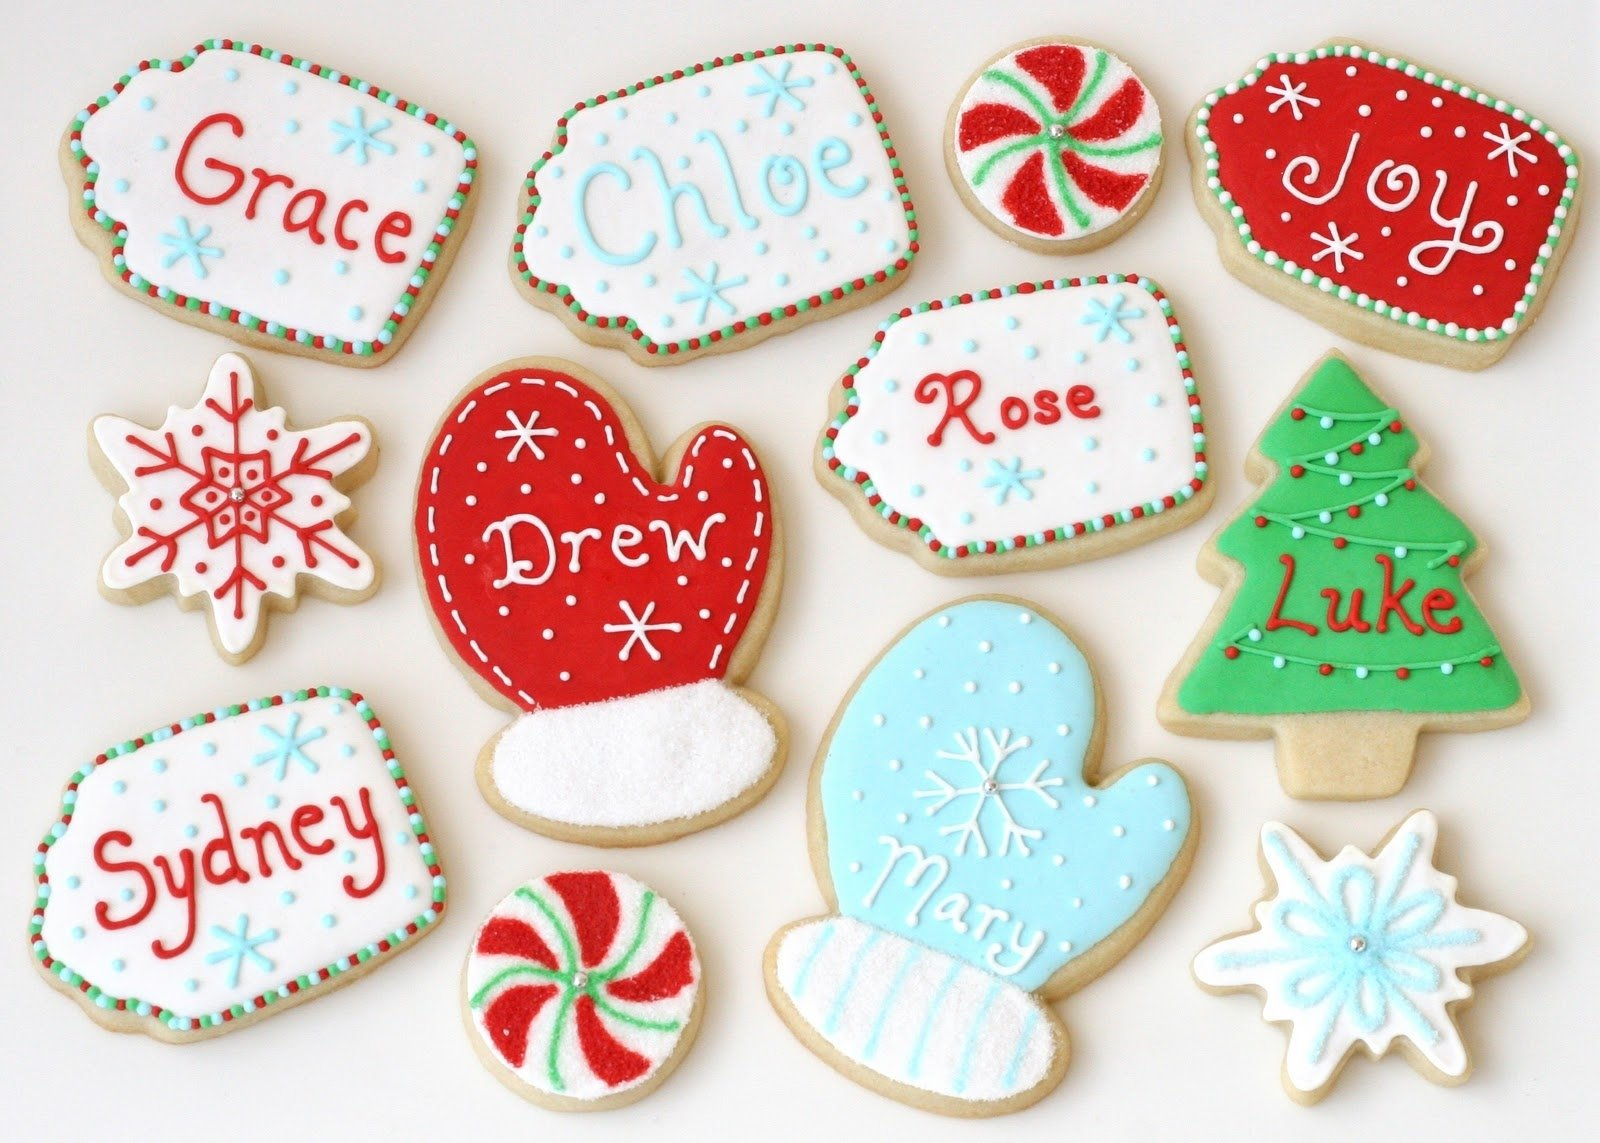 christmas cookie decorating ideas : fun cookie decorating ideas